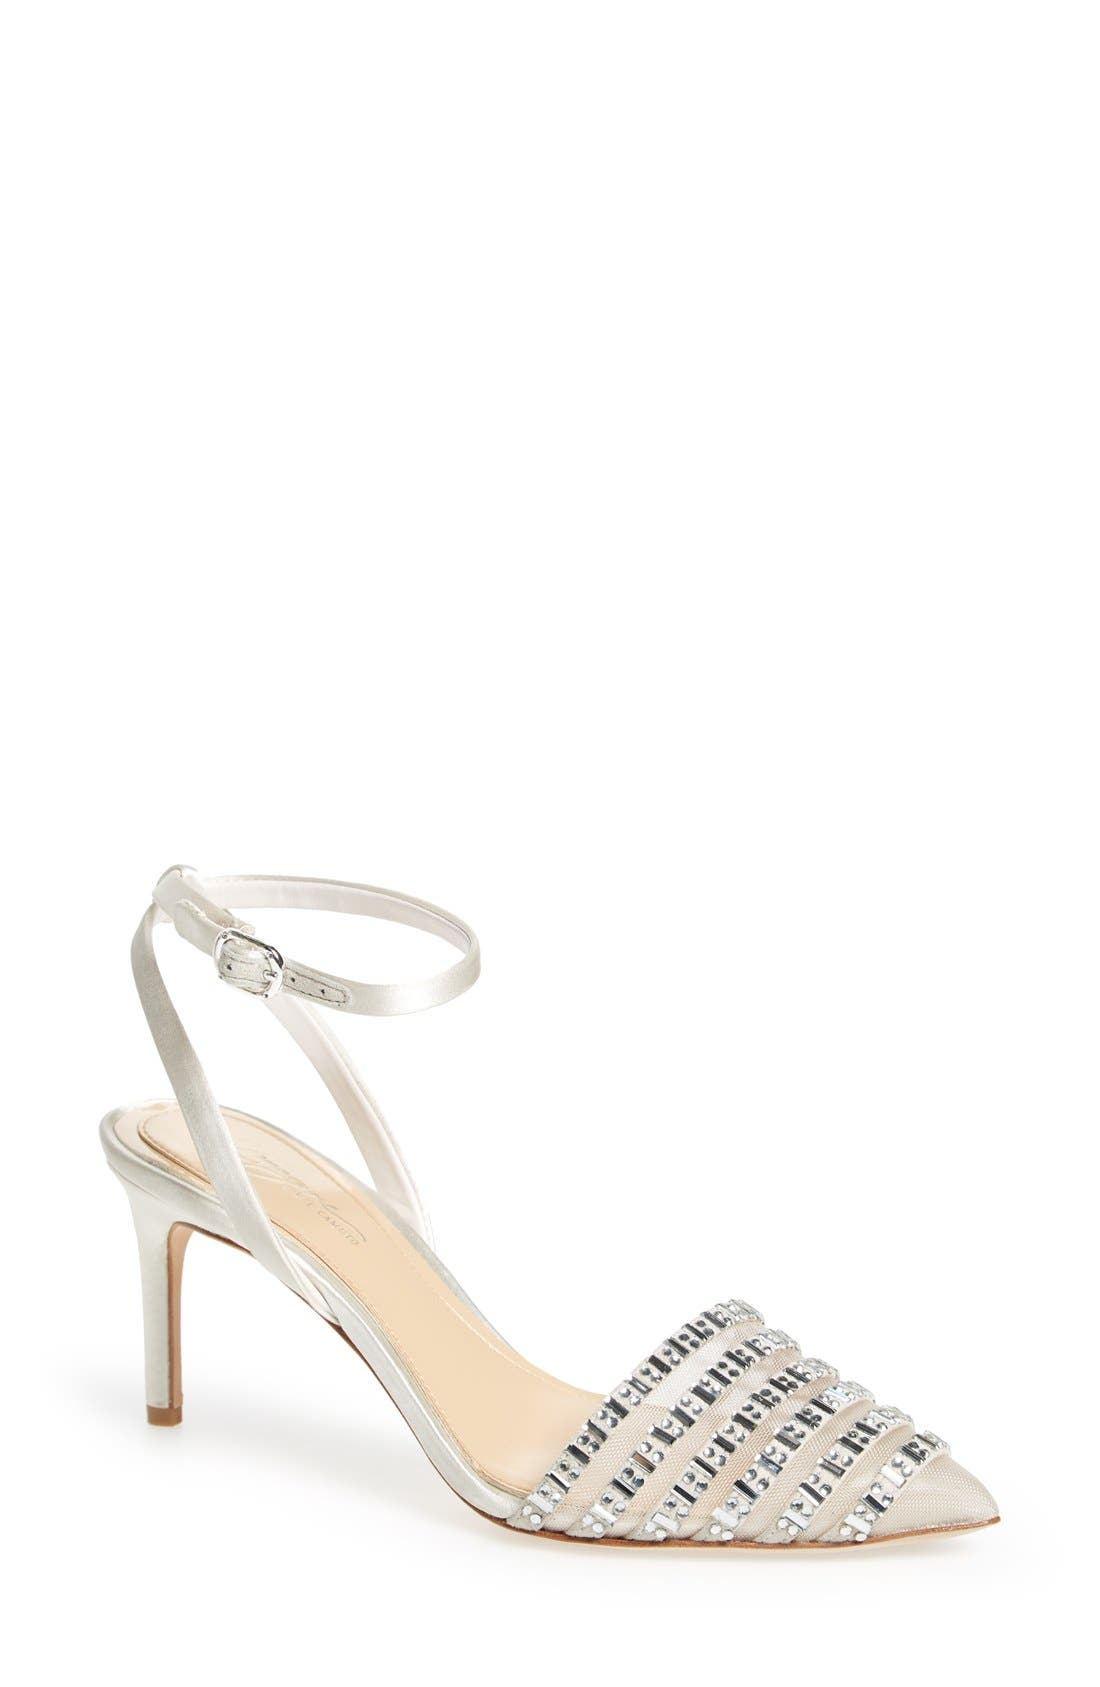 Main Image - Imagine by Vince Camuto 'Michael' Sandal (Women)